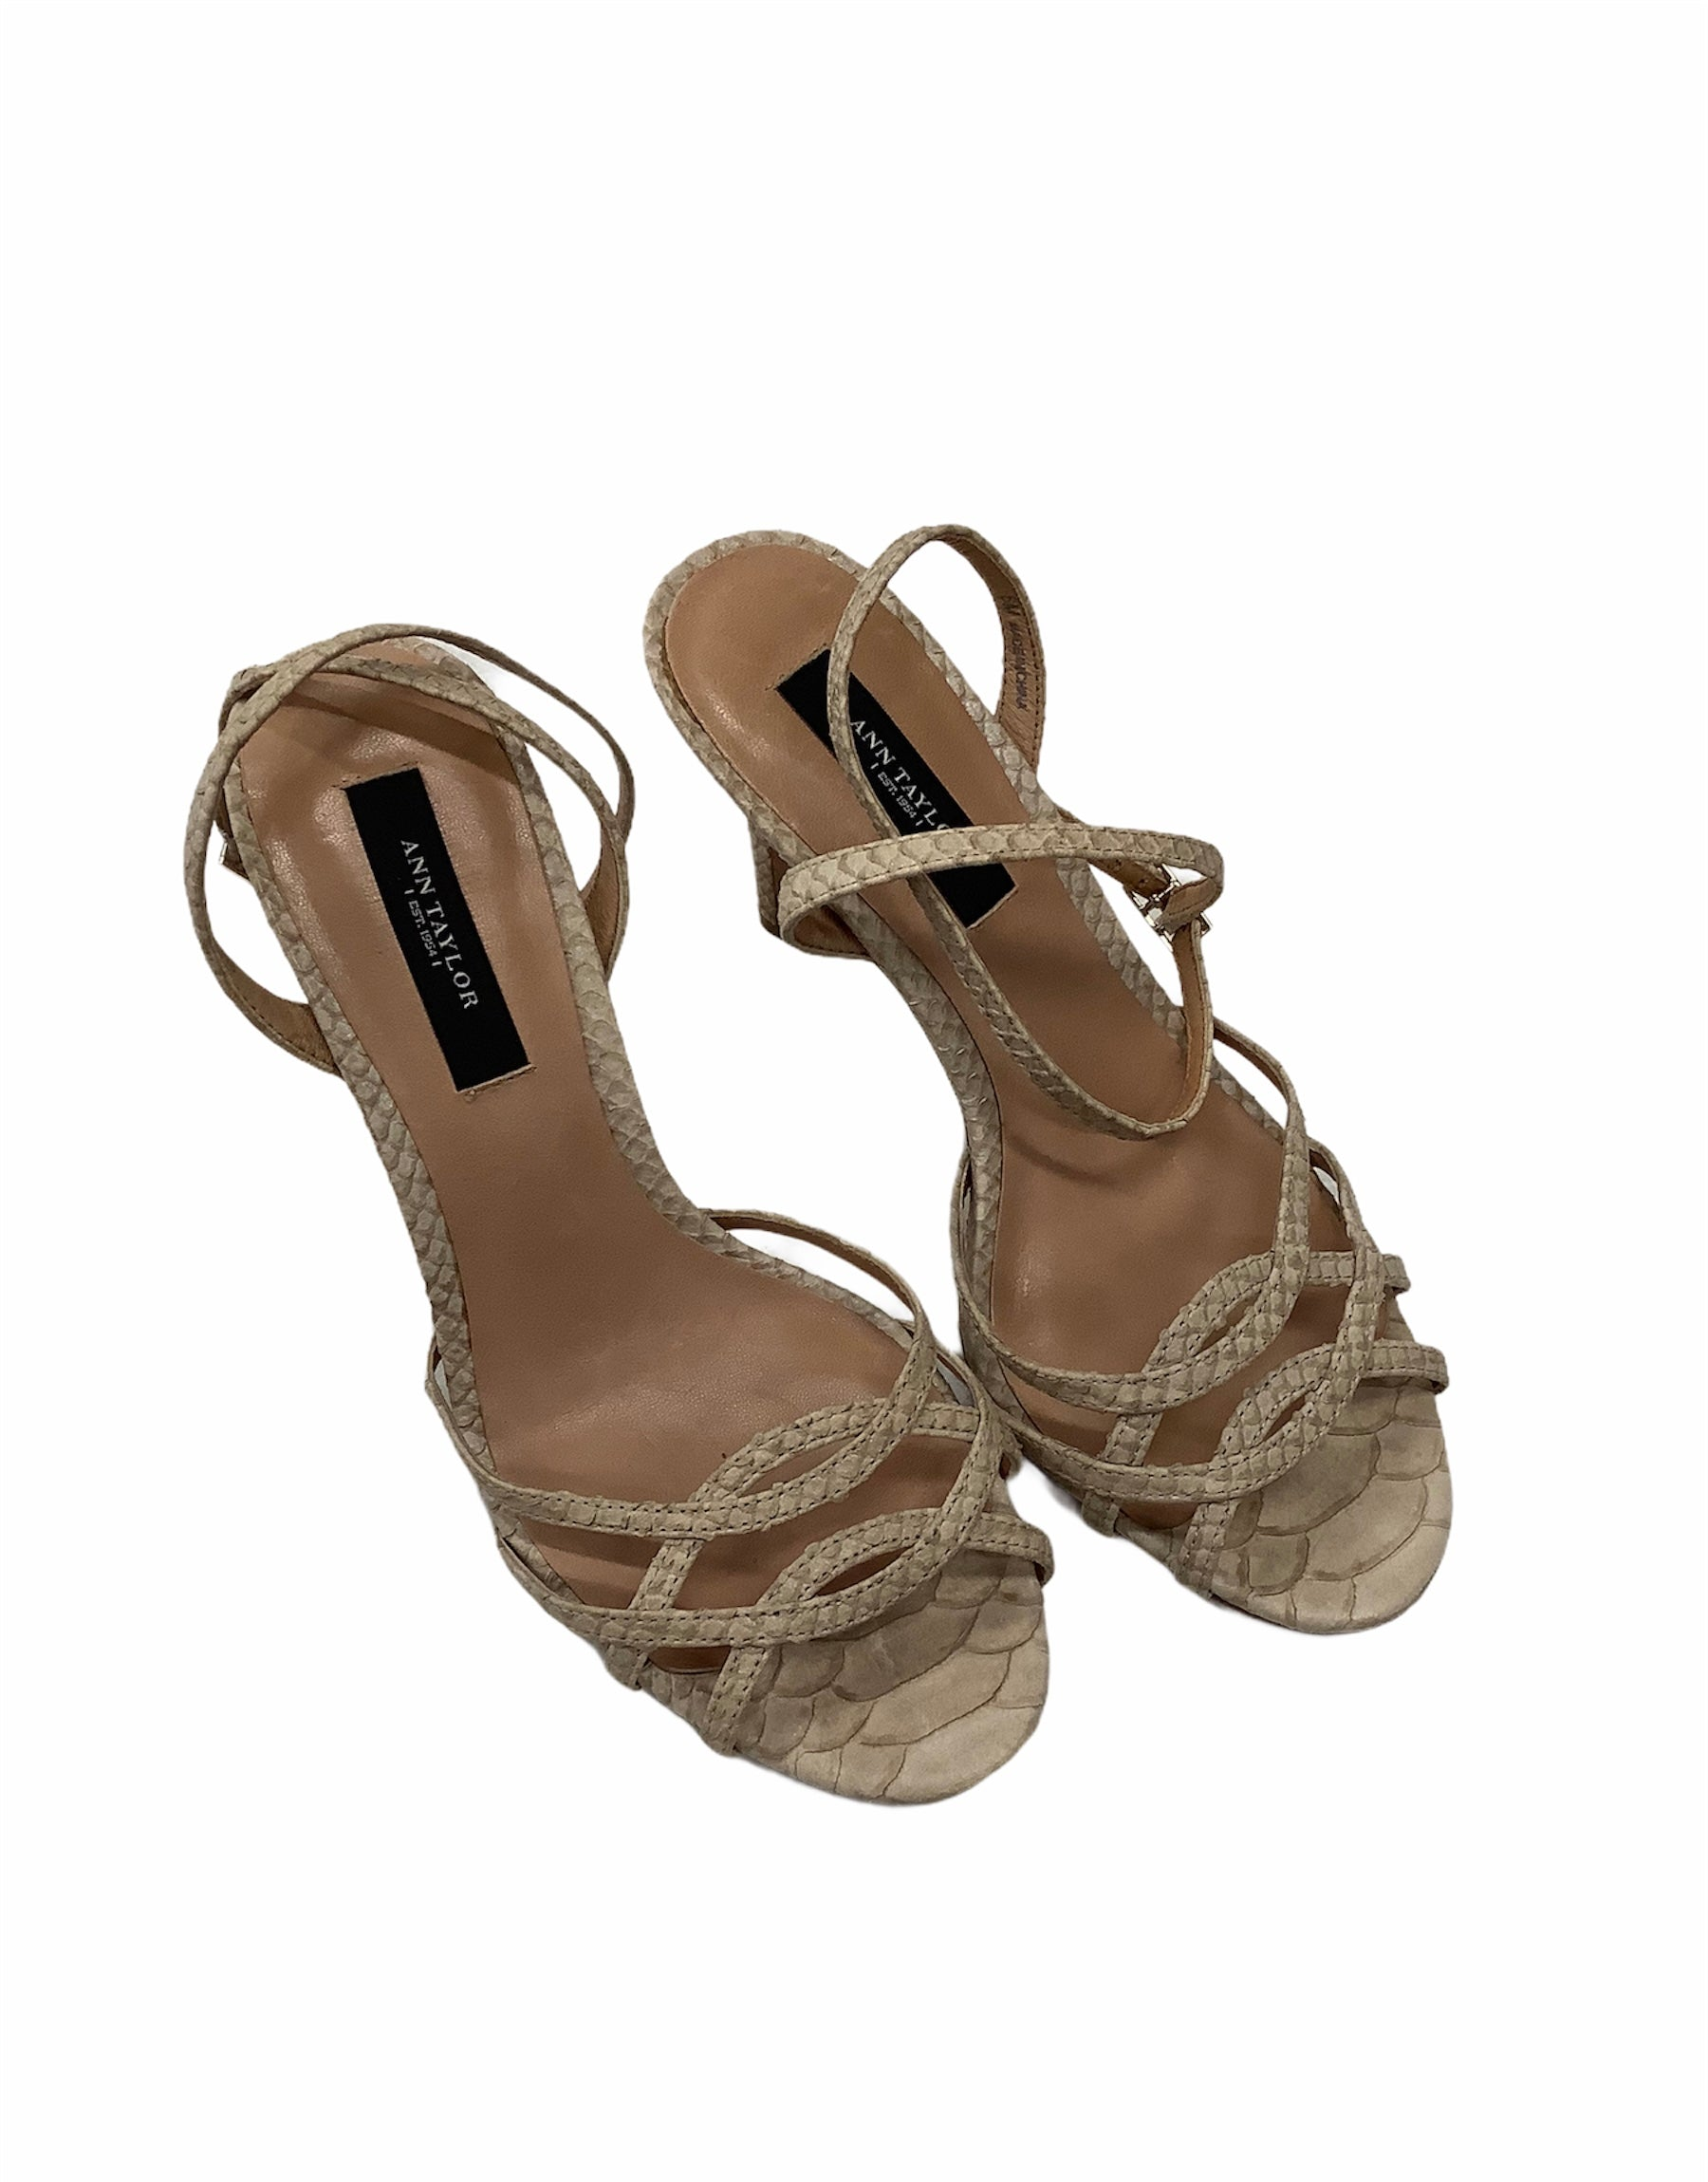 Ann Taylor Kitten Heels - <P>SMALL HEEL AND IN